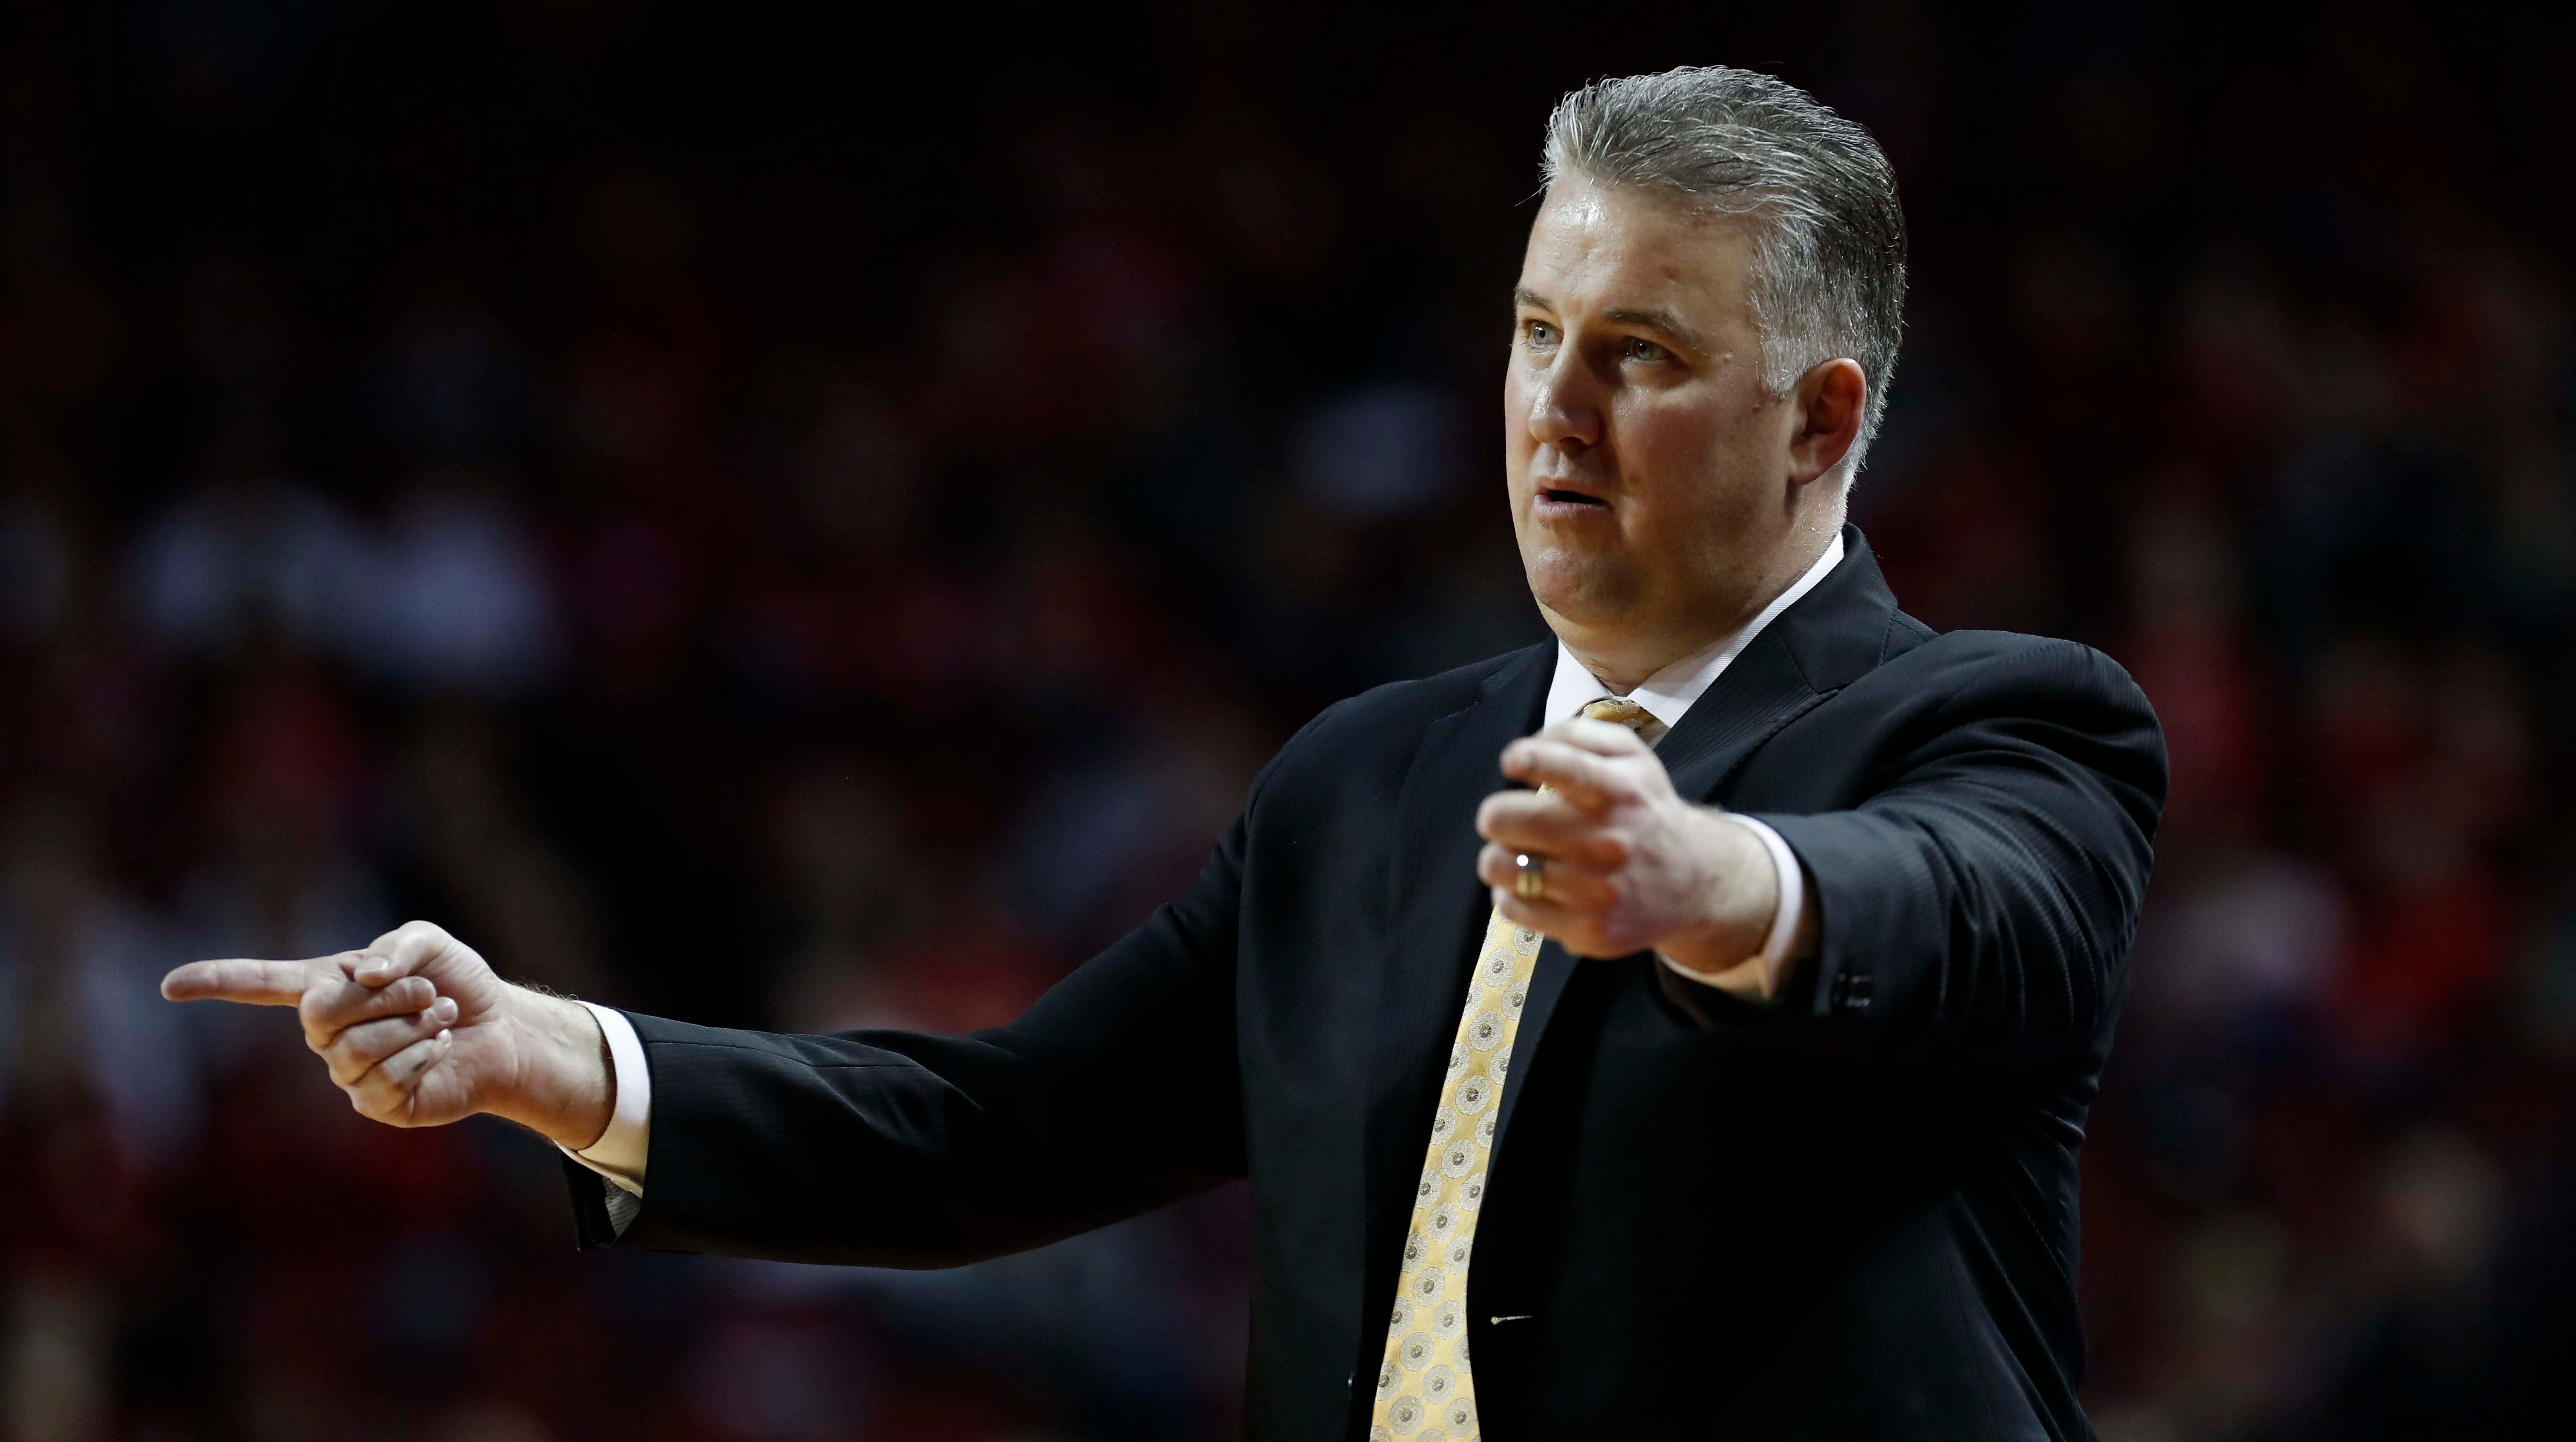 Purdue Boilermakers head coach Matt Painter reacts during the game against the Nebraska Cornhuskers in the second half at Pinnacle Bank Arena. Purdue won 75-72.